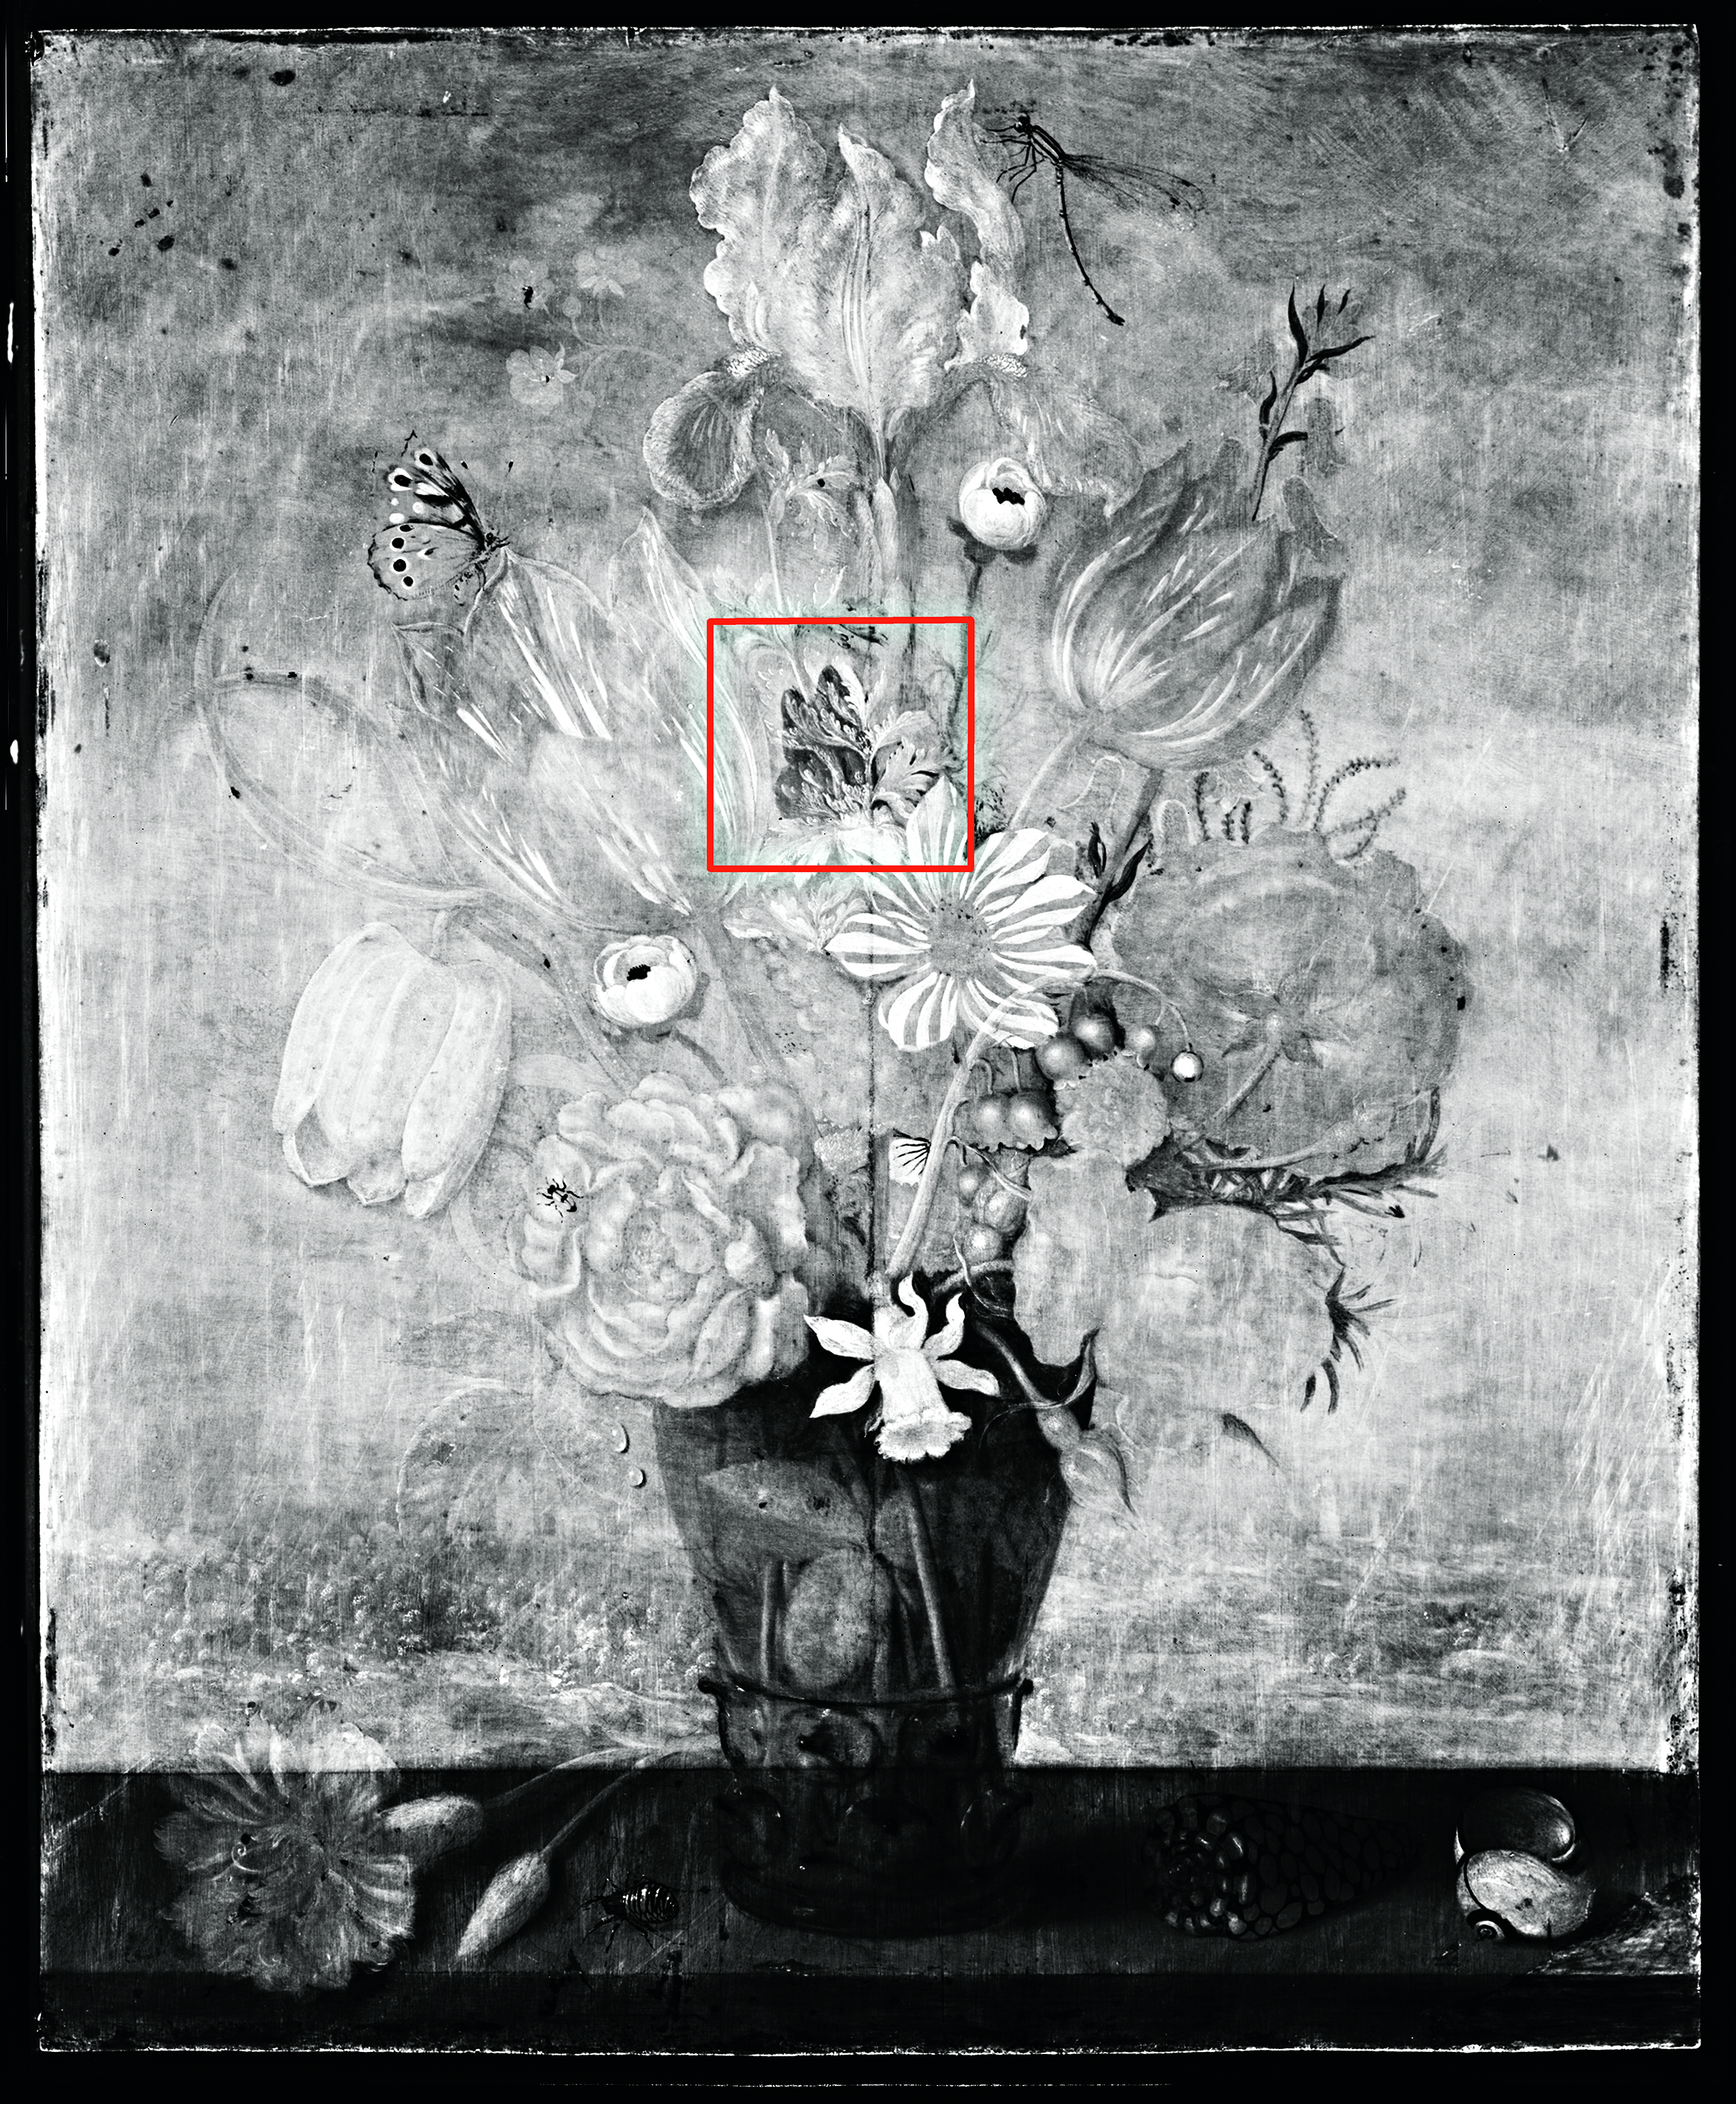 Image produced via Infrared Reflectography (IRR) of Ambrosius Bosschaert the Elder's, Bouquet of Flowers on a Ledge, 1619, Los Angeles County Museum of Art, gift of Mr. and Mrs. Edward W. Carter, photo © Museum Associates/LACMA Conservation, by Yosi Pozeilov